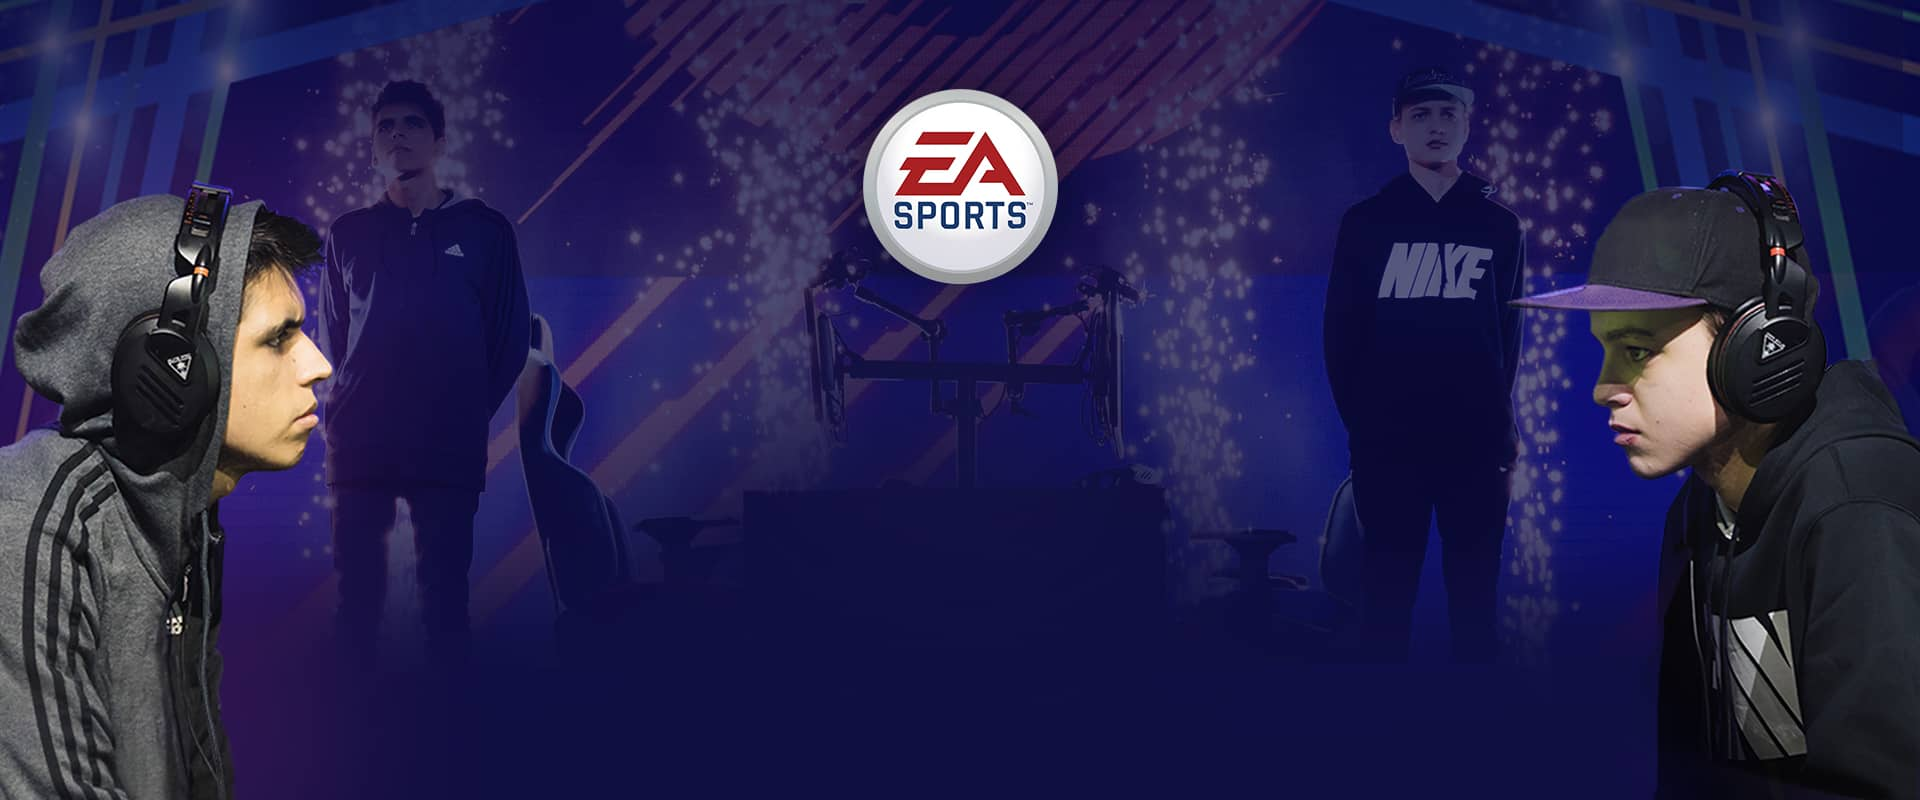 Turtle Beach è il fiero partner audio degli EA Sports FIFA 18 Global Series